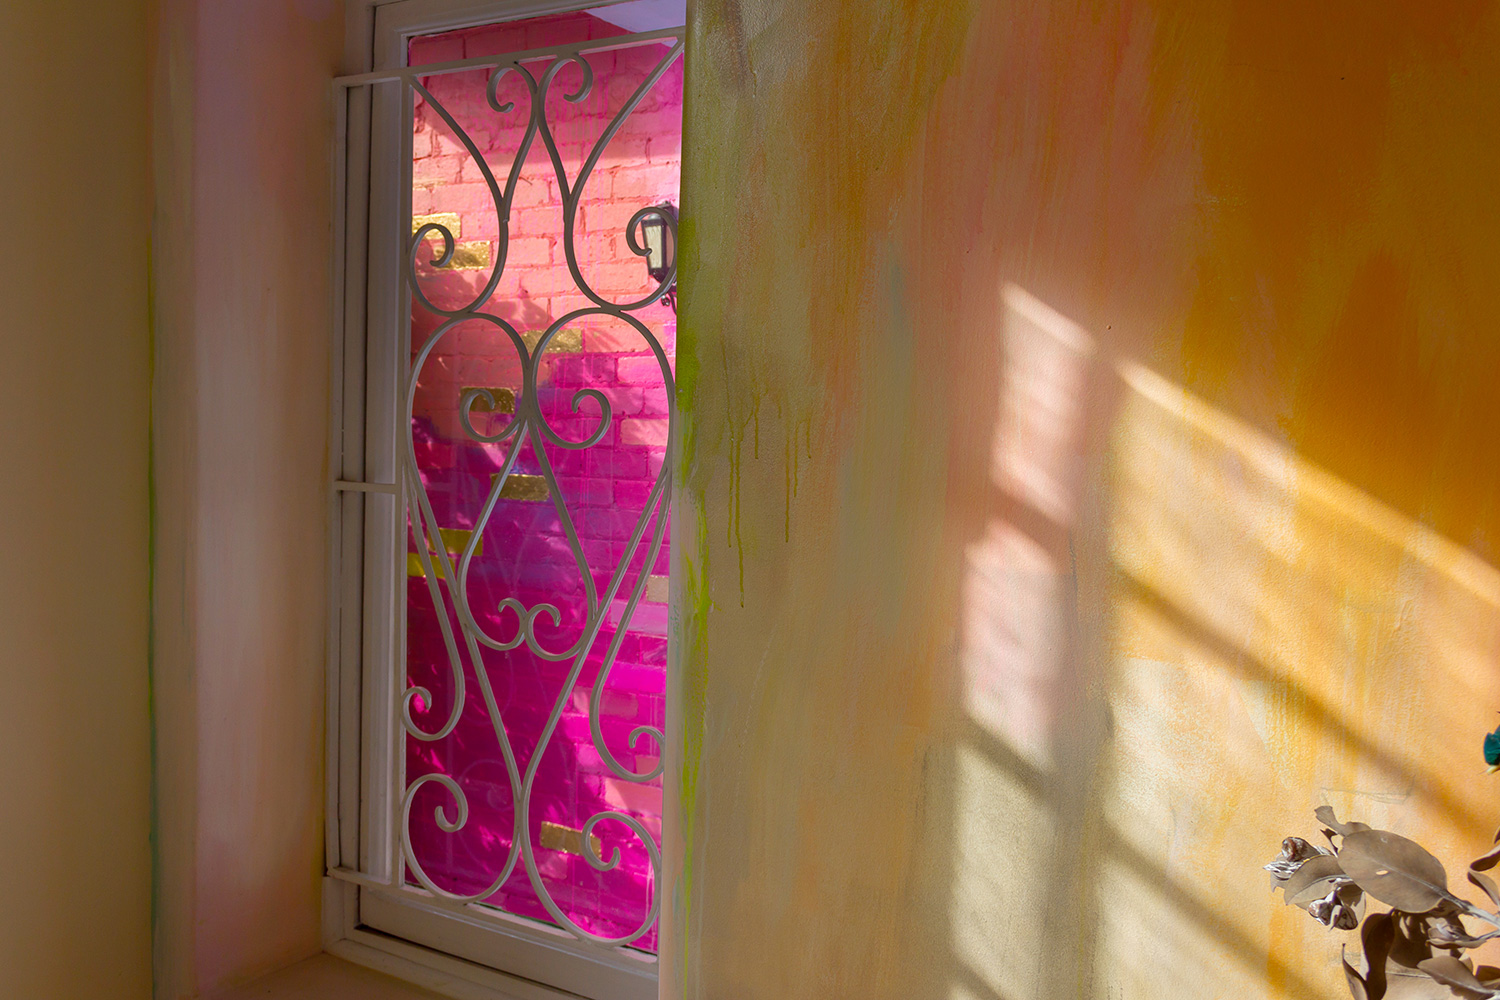 A window provides a peek at the bright pink abstract mural on the wall outside.